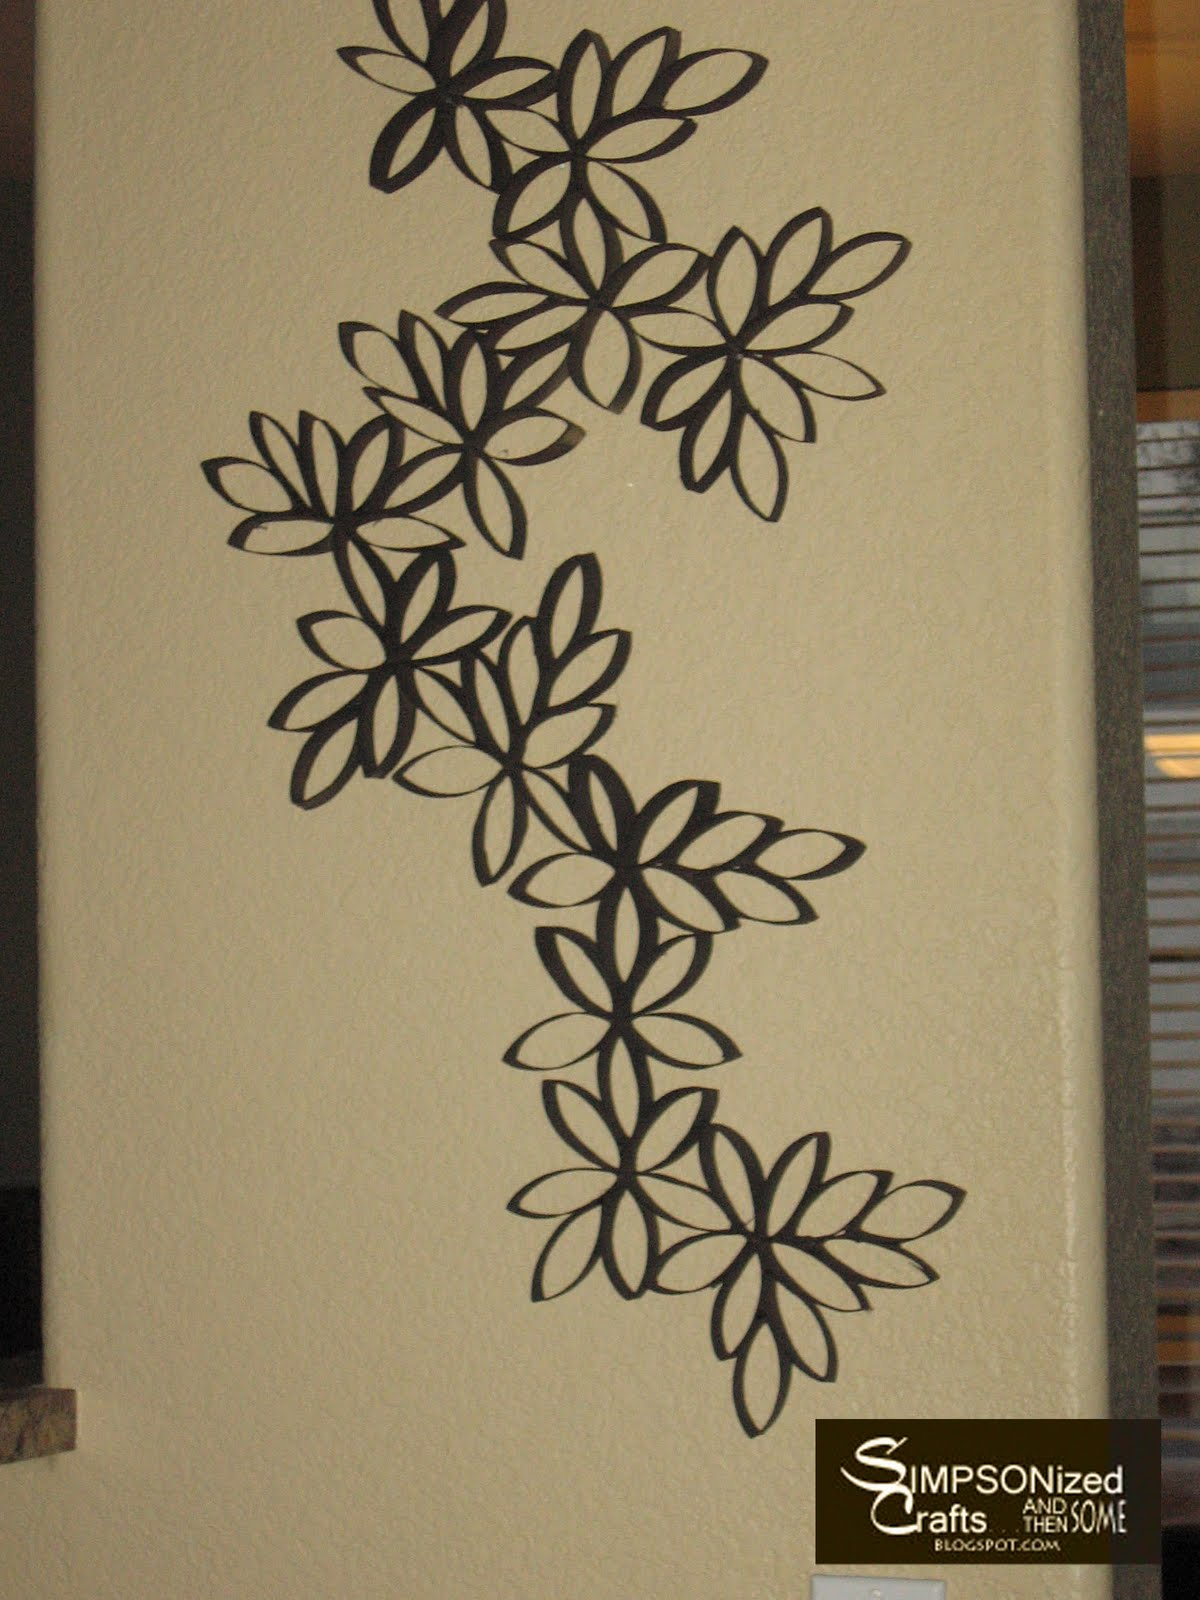 Wall Decor Ideas Using Paper : Simpsonized crafts recycled art craft project